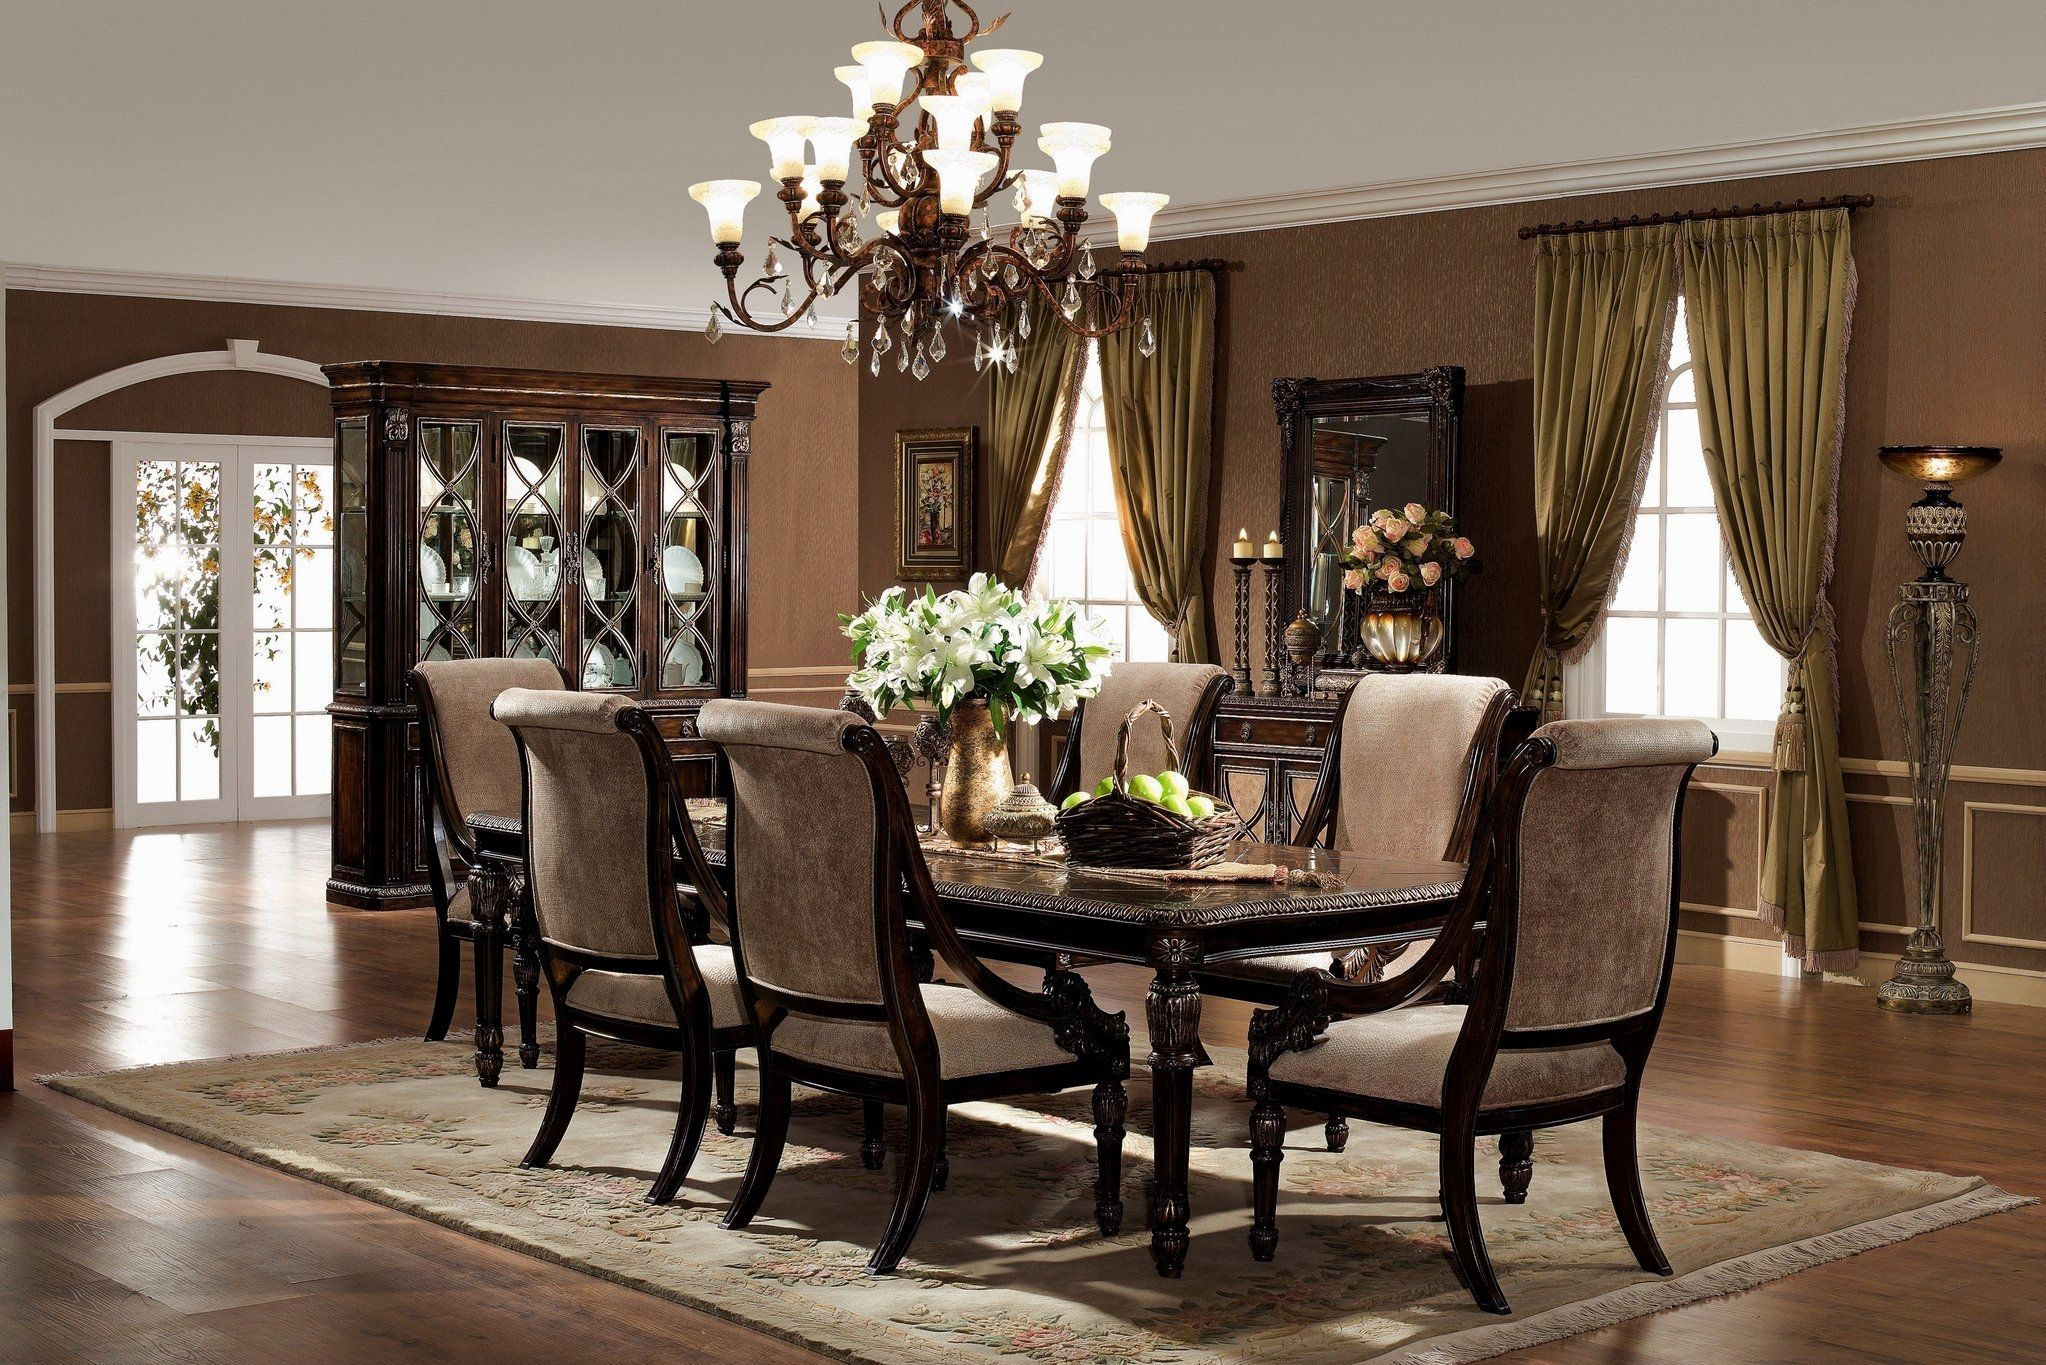 Decor Round Formal Dining Room Tables Victorian Expansive Sets Purchase